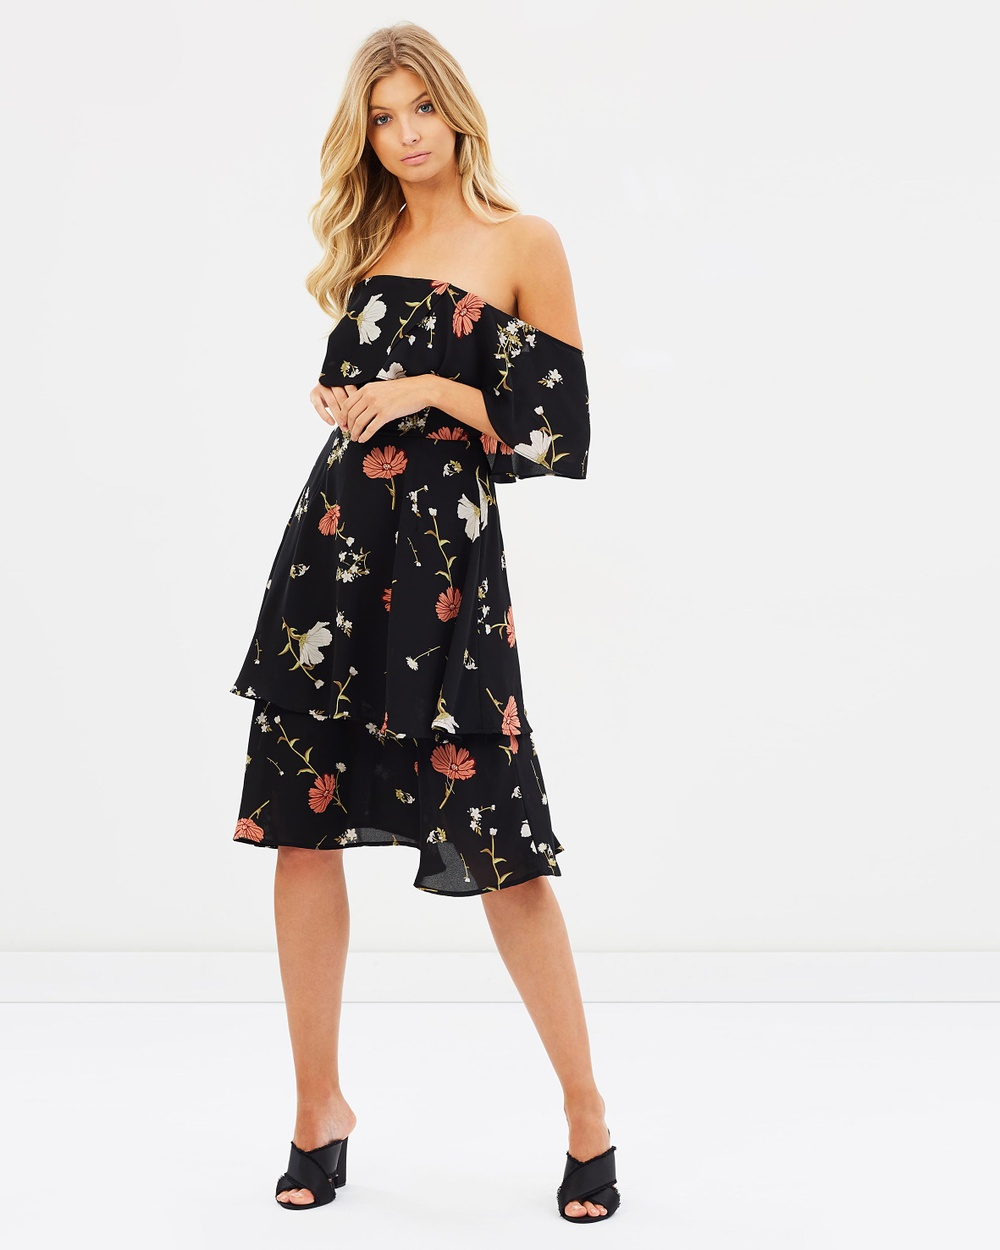 Atmos & Here ICONIC EXCLUSIVE Karlie Off Shoulder Midi Dress Printed Dresses Black Scattered Floral ICONIC EXCLUSIVE Karlie Off-Shoulder Midi Dress